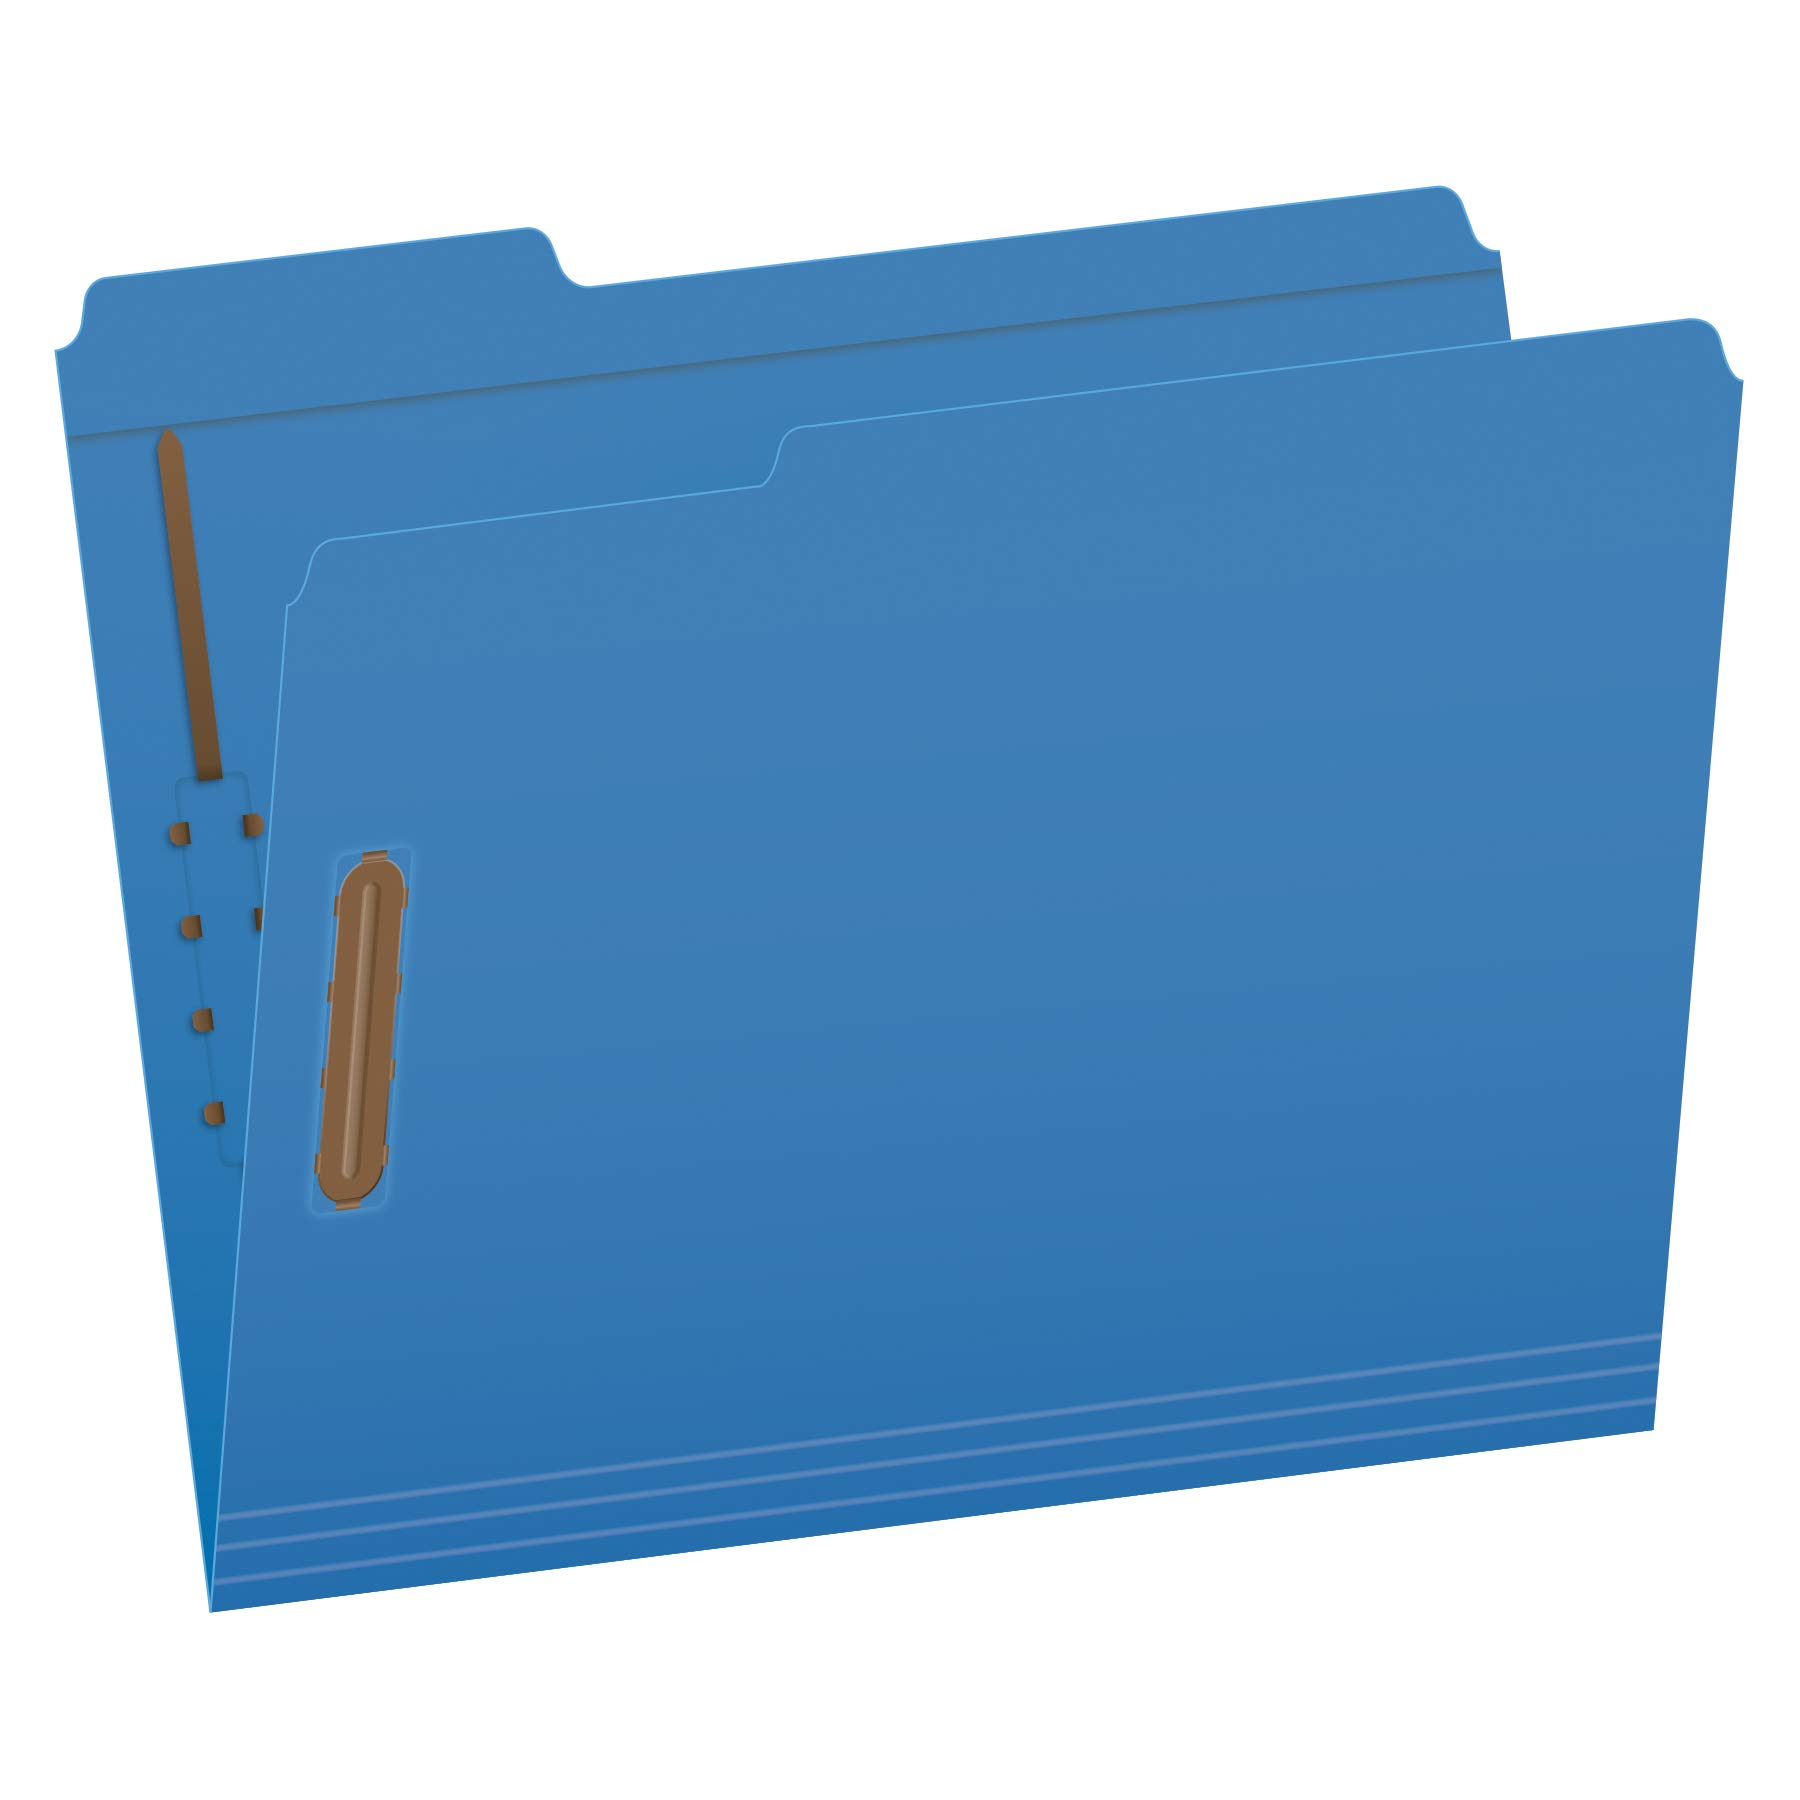 Pendaflex Fastener Folders, 2 Fasteners, Letter Size, Blue, 1/3 Cut Tabs in Left, Right, Center Positions, 50 per Box (22040GW) by Pendaflex